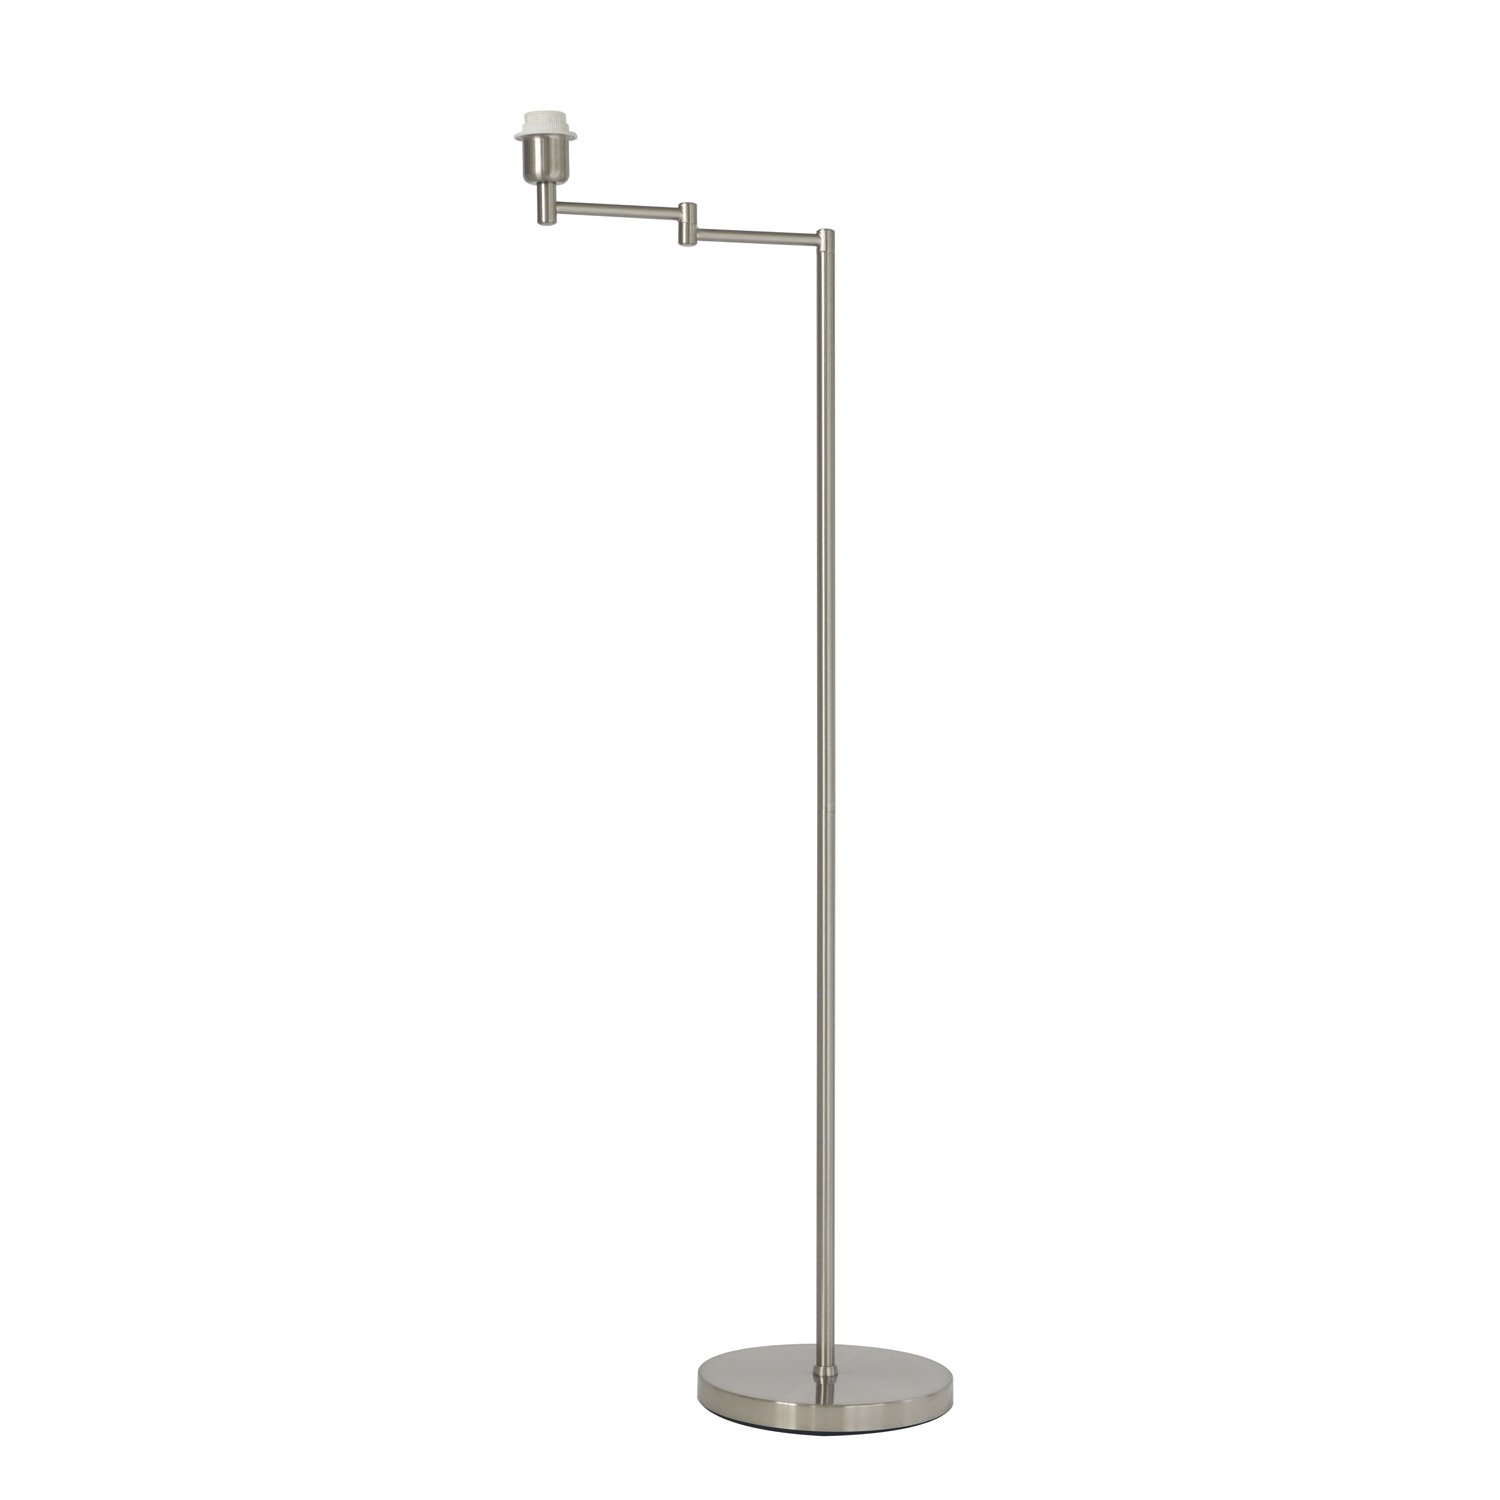 pied de lampadaire arm m tal satin nickel 130 cm inspire leroy merlin. Black Bedroom Furniture Sets. Home Design Ideas